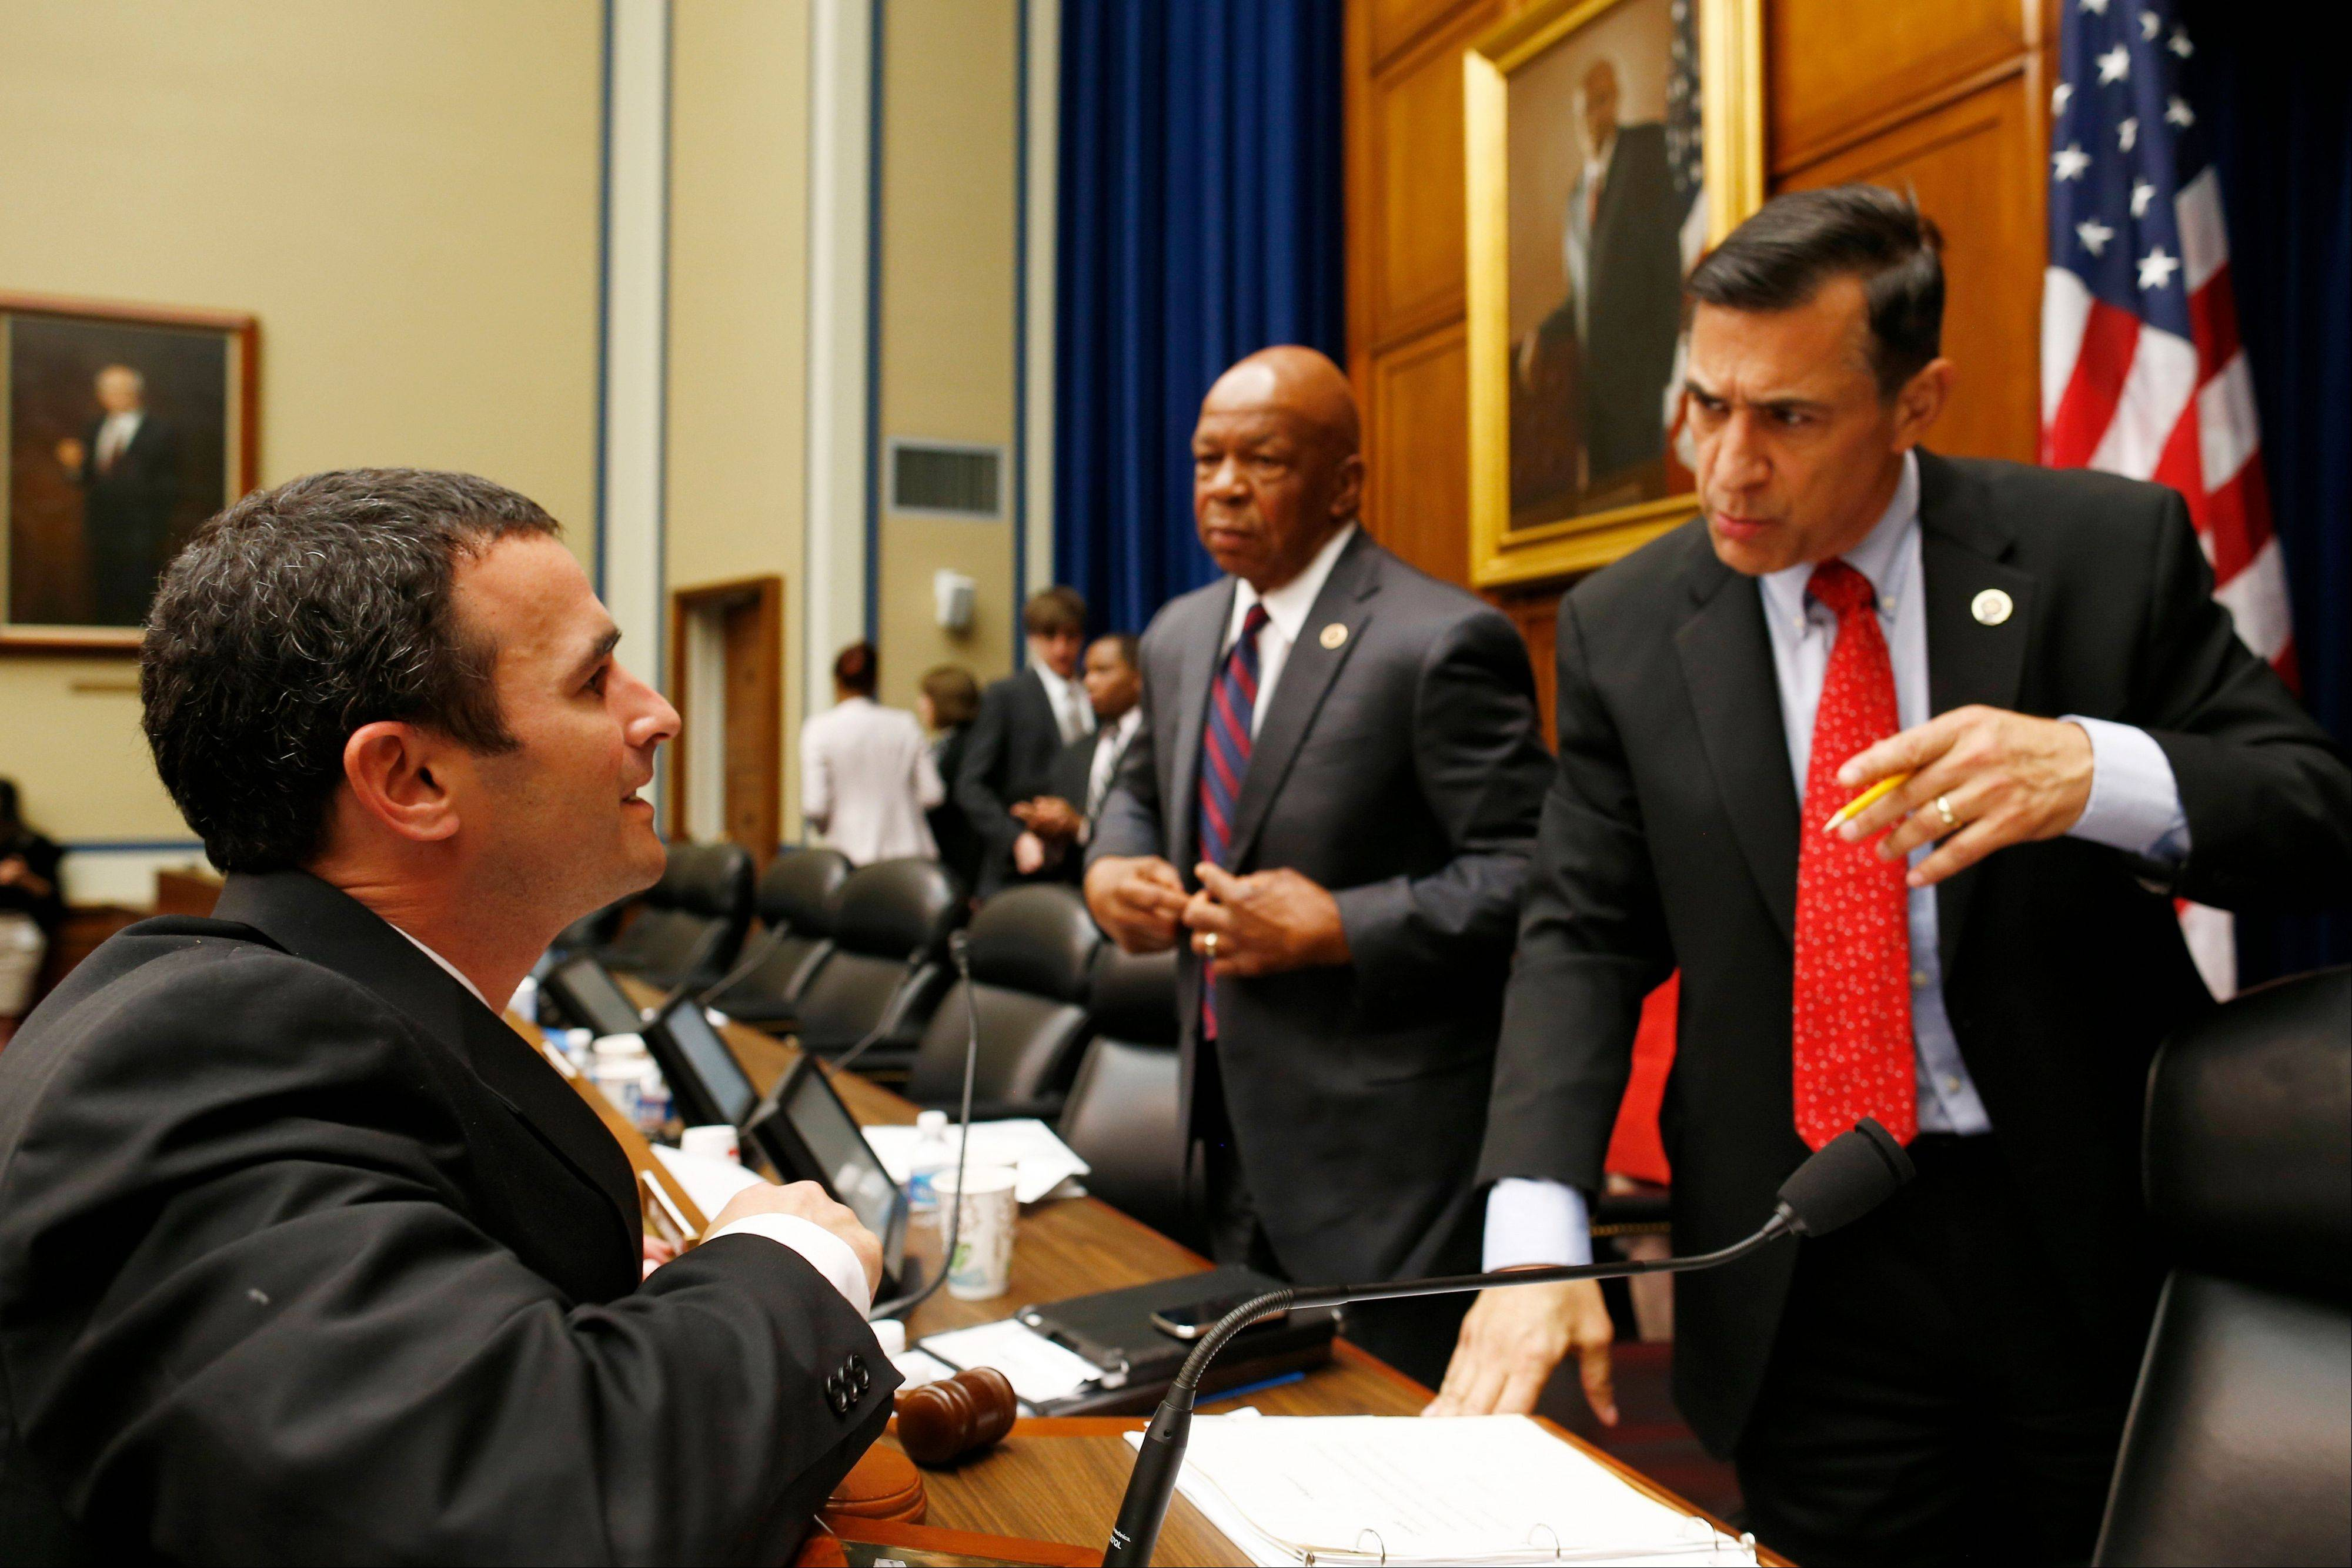 Acting IRS commissioner Danny Werfel, left, talks Thursday with House Oversight and Government Reform Committee Chairman Rep. Darrell Issa, a California Republican, right, accompanied by the committee�s ranking Democrat Rep. Elijah Cummings, a Maryland Democrat, on Capitol Hill in Washington after he testified before the committee�s hearing regarding IRS conference spending.